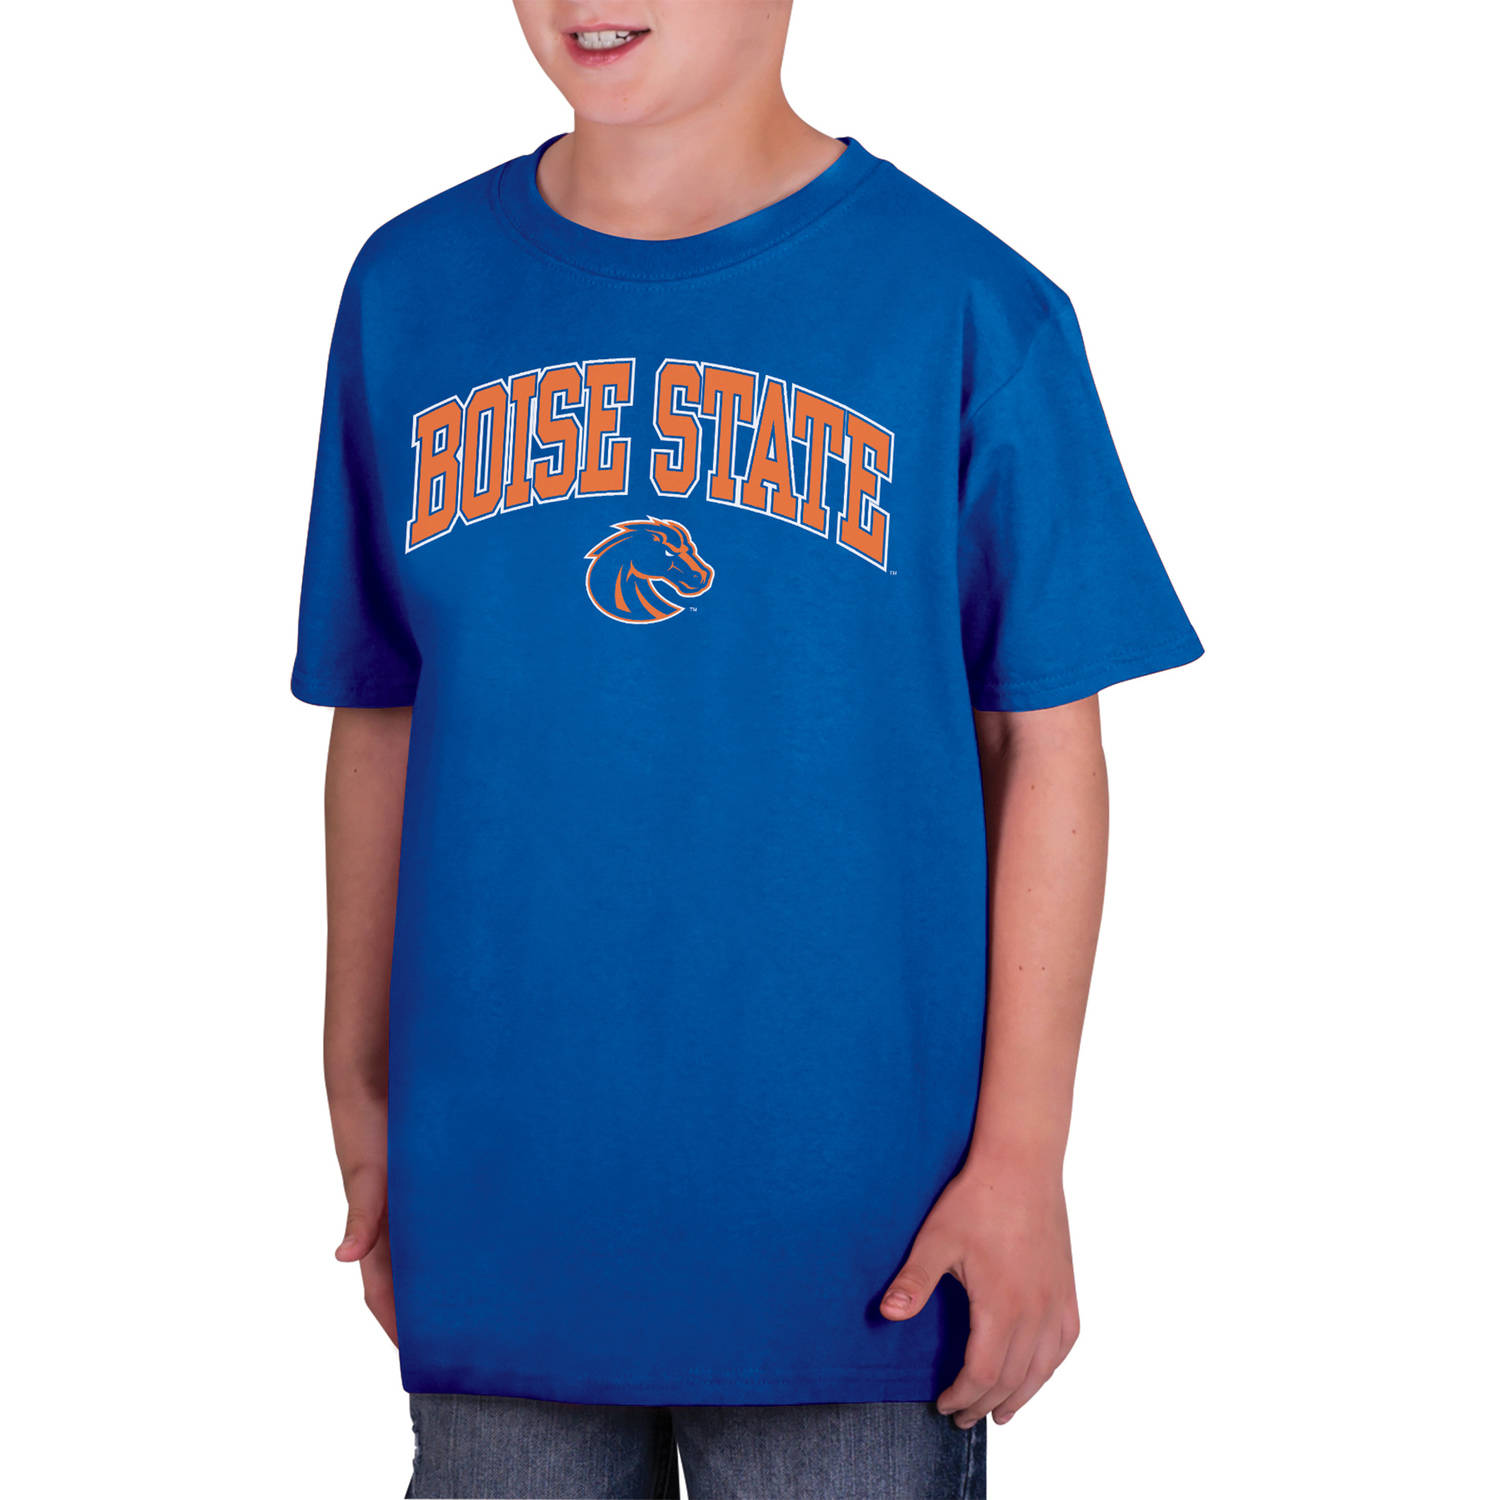 NCAA Boise State Broncos Boys Classic Cotton T-Shirt